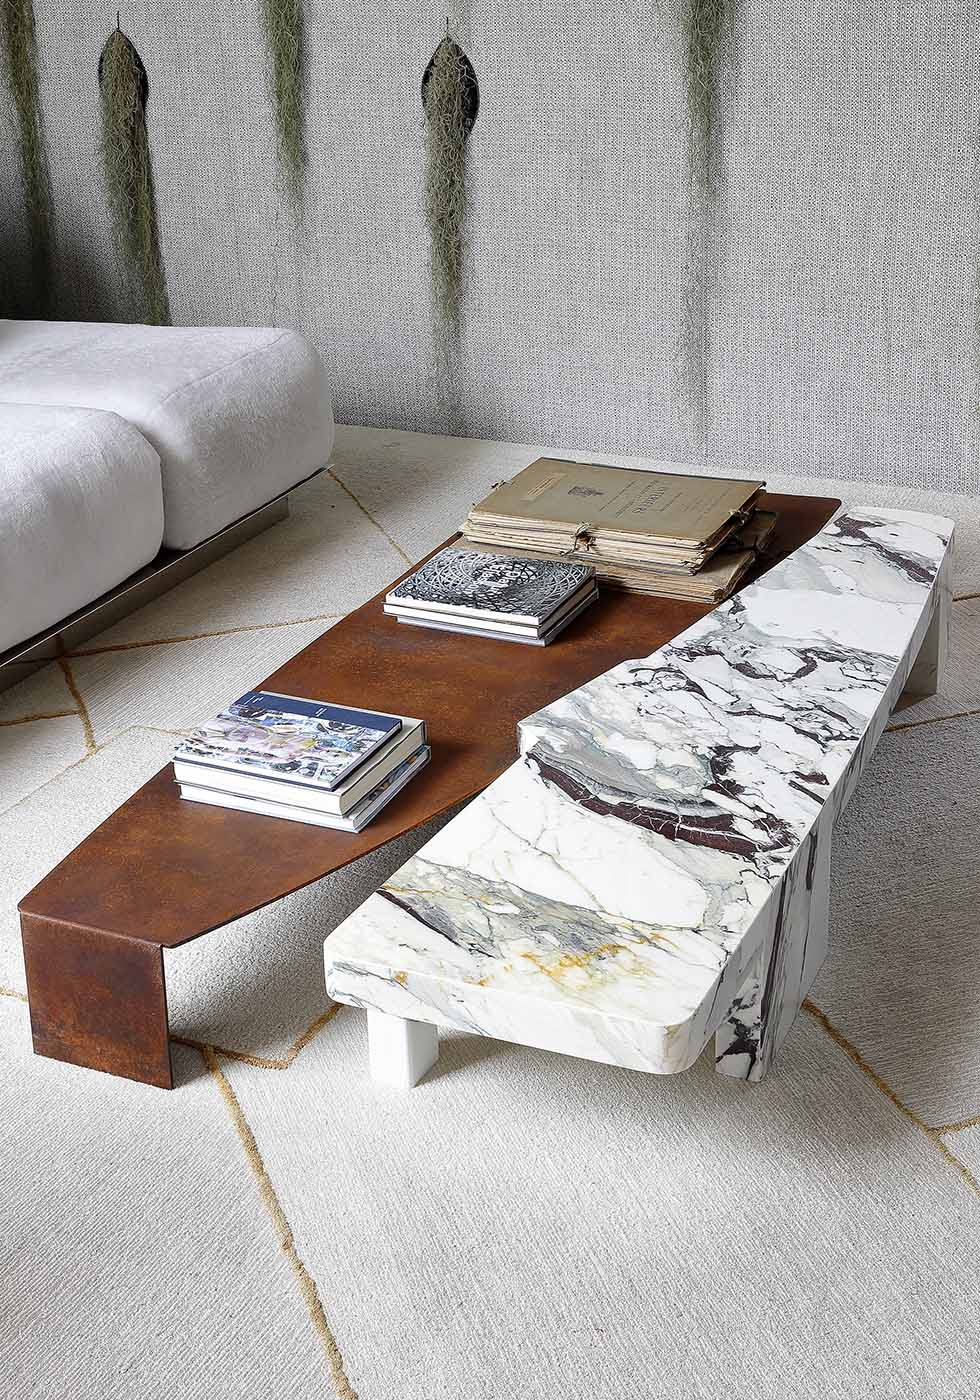 Geo-Organic — Galvan Cedillo throughout Scattered Geo Console Tables (Image 13 of 30)